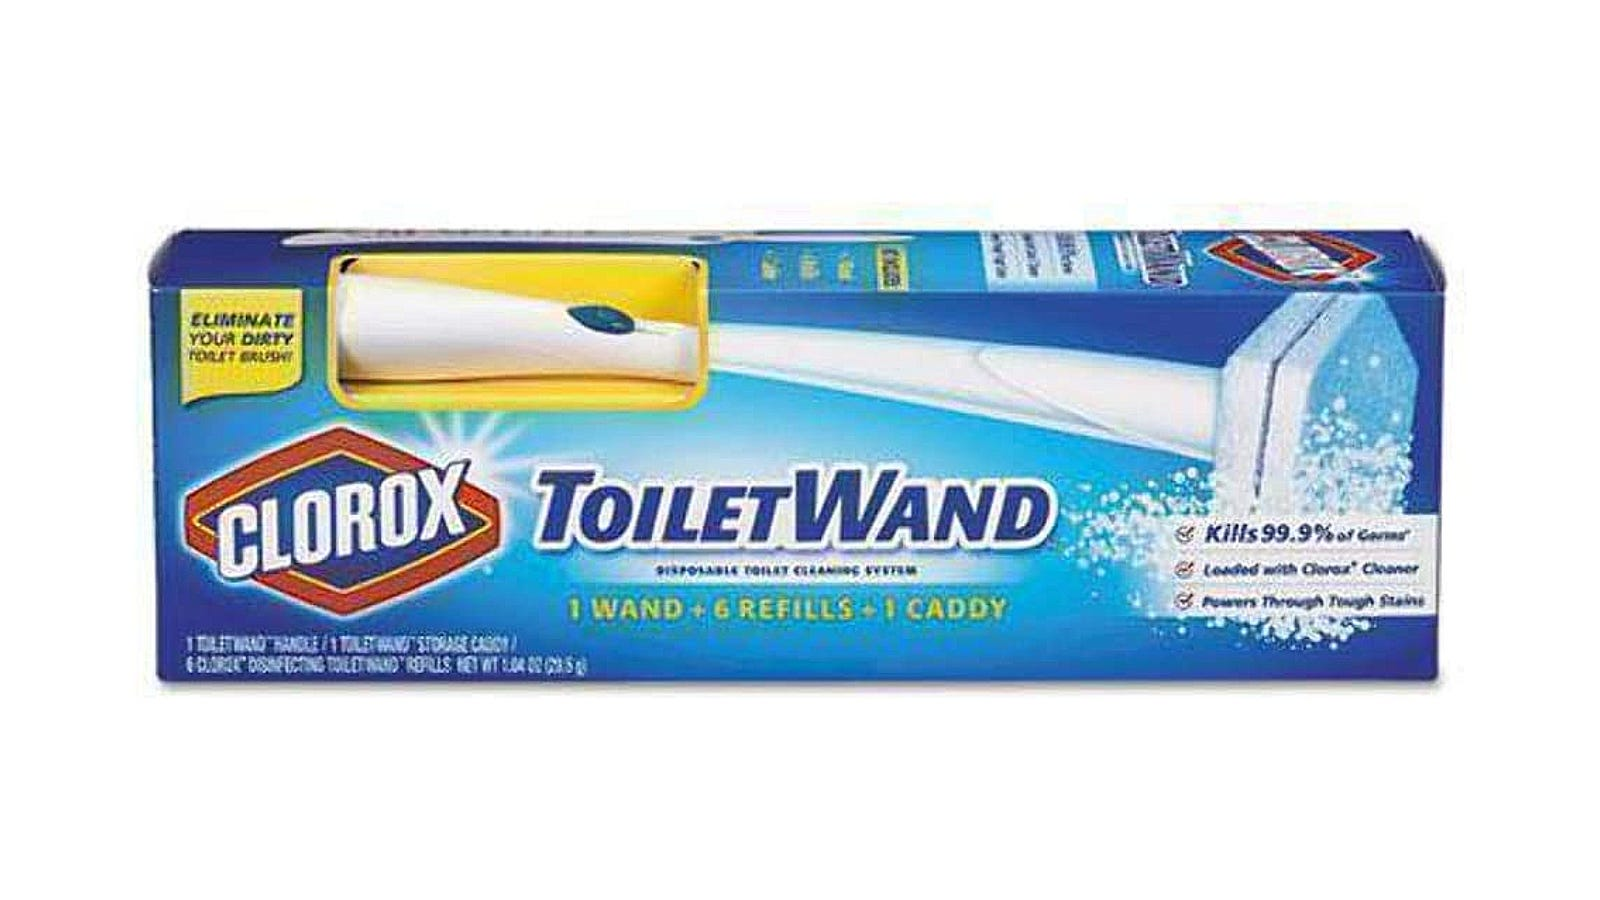 The blue packaging of the Clorox ToiletWand.